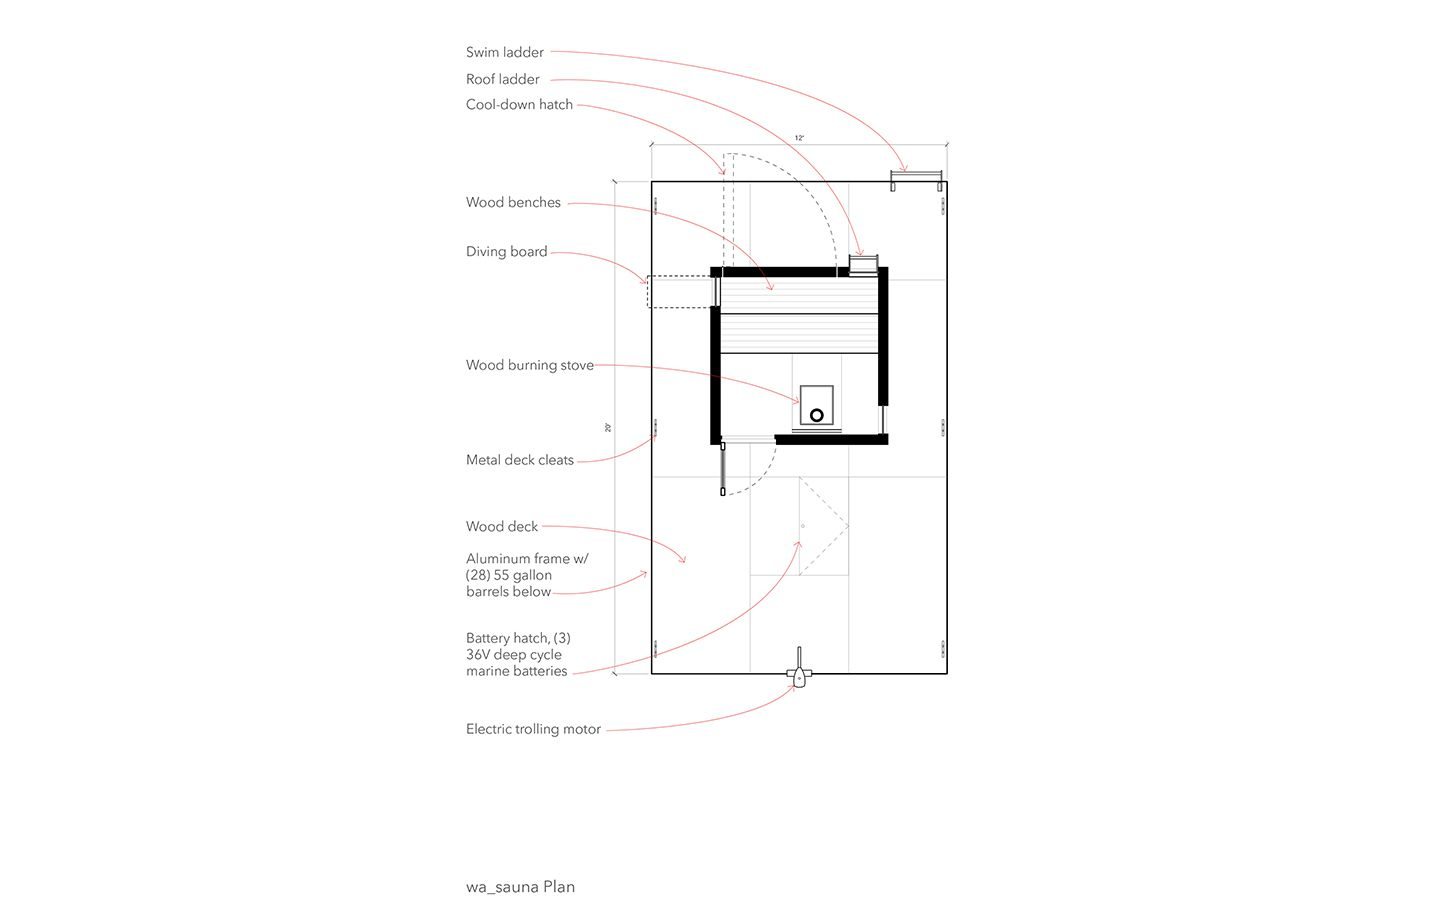 A Sauna In The Middle Of Lake Wa By Gocstudio Saunas Wiring Diagram